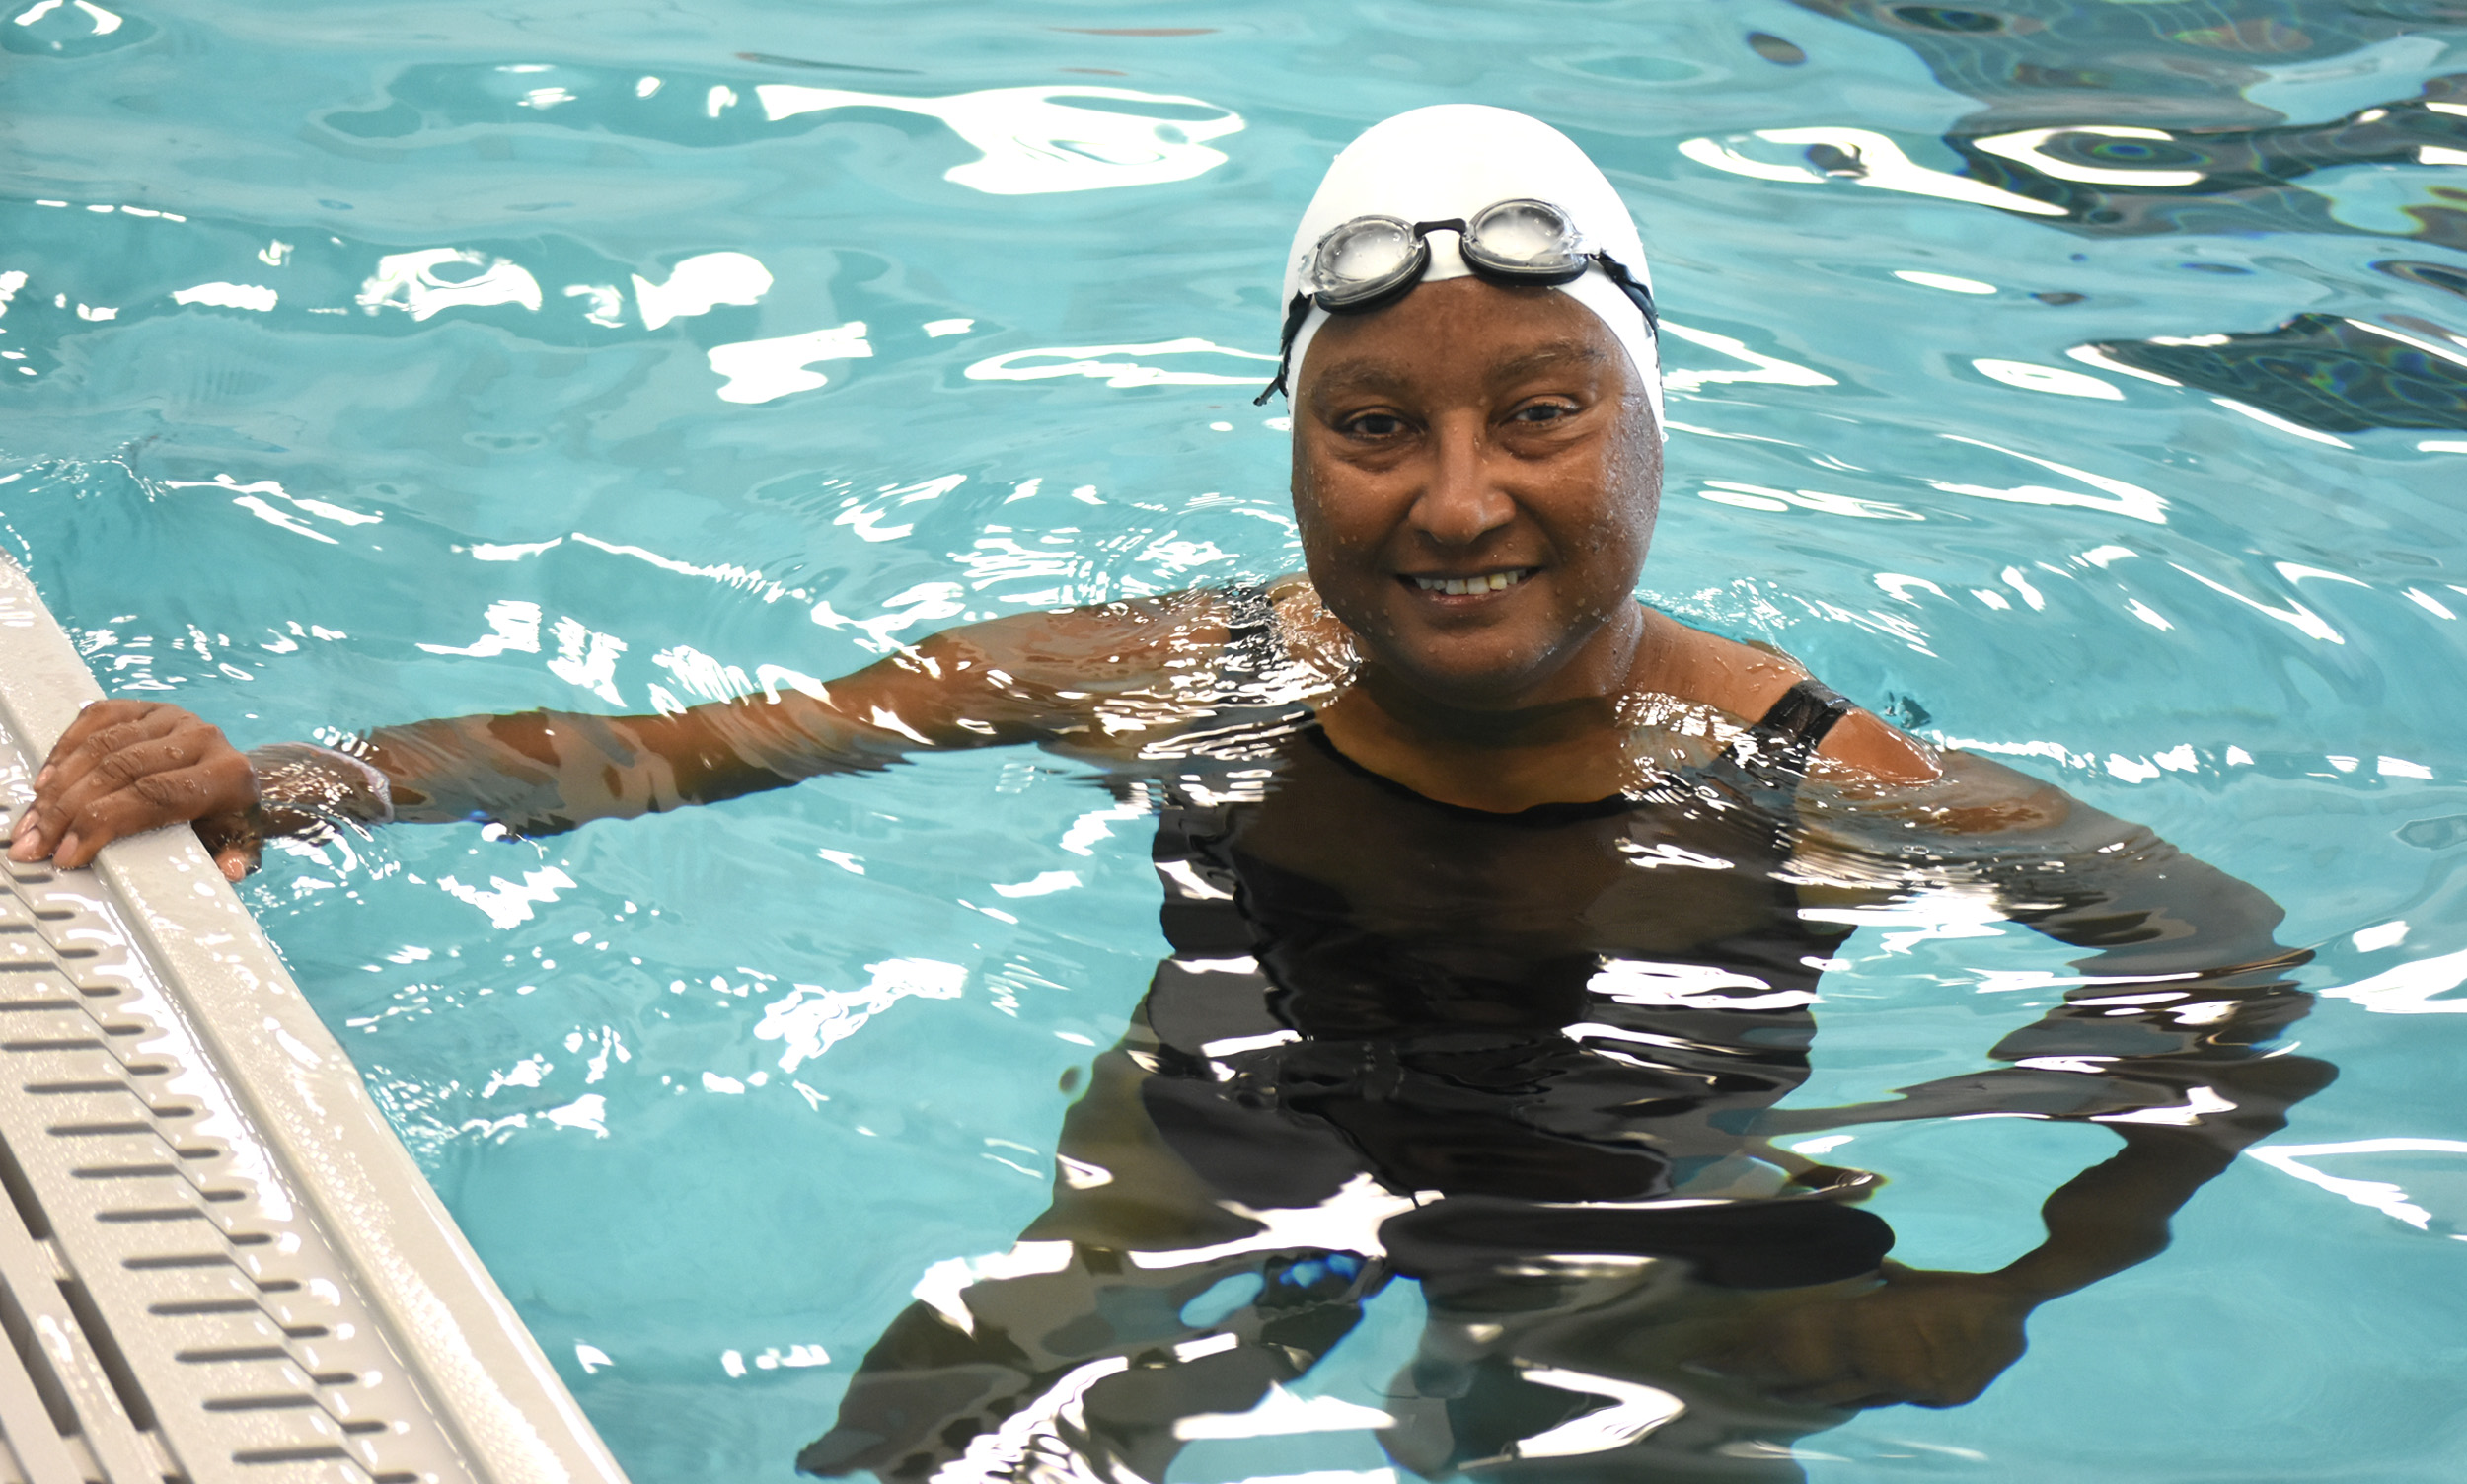 Myrna Moline gets set to practice in the pool at the Bessemer Recreation Center. The New Orleans native and South Titusville resident prepares for the National Senior Games this week in Birmingham. (Solomon Crenshaw Jr./For The Birmingham Times).